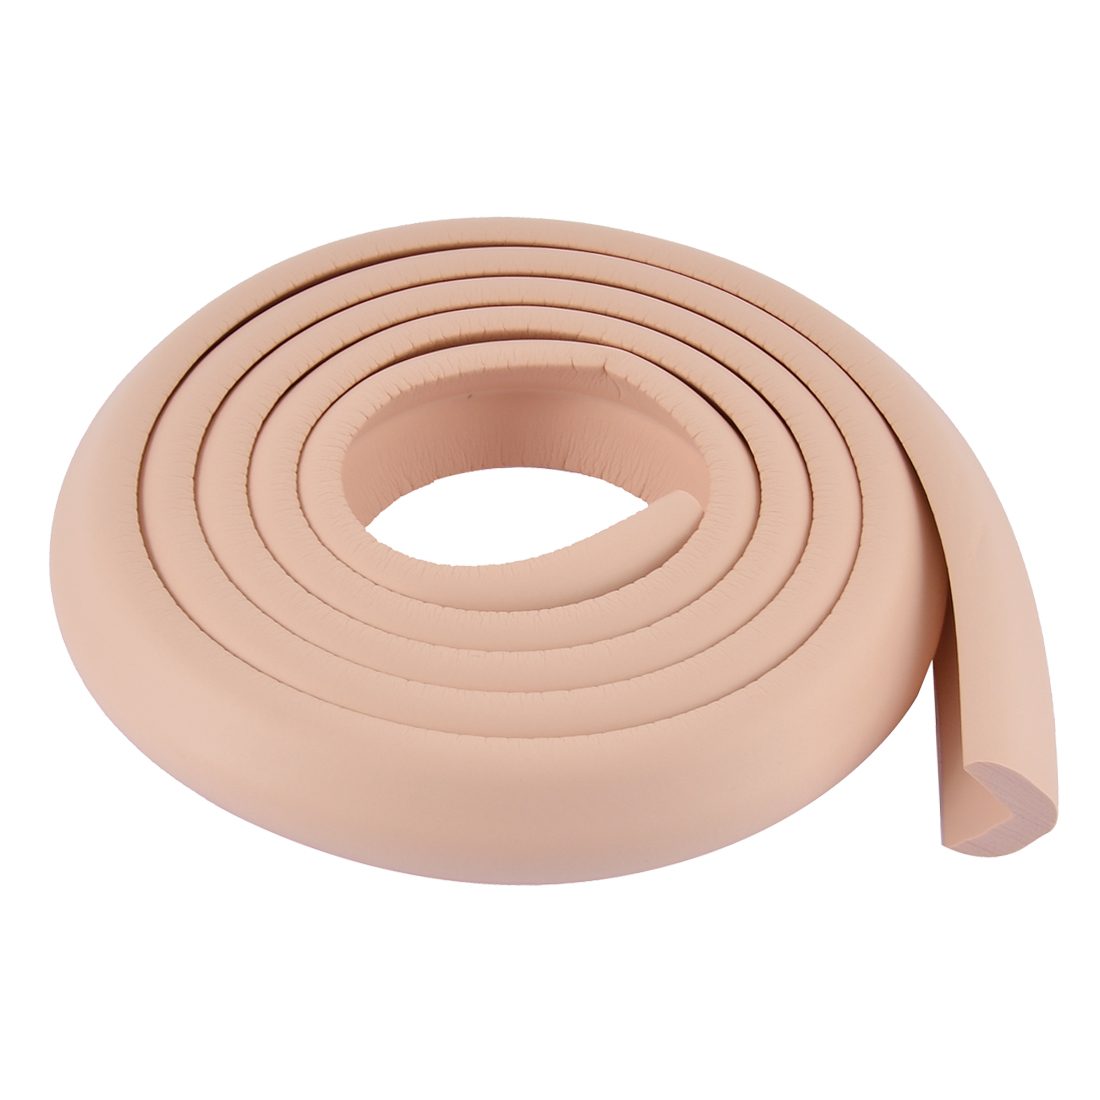 Furniture Proofing Corner Edge Guard Protector Cushion 2M Long Pink